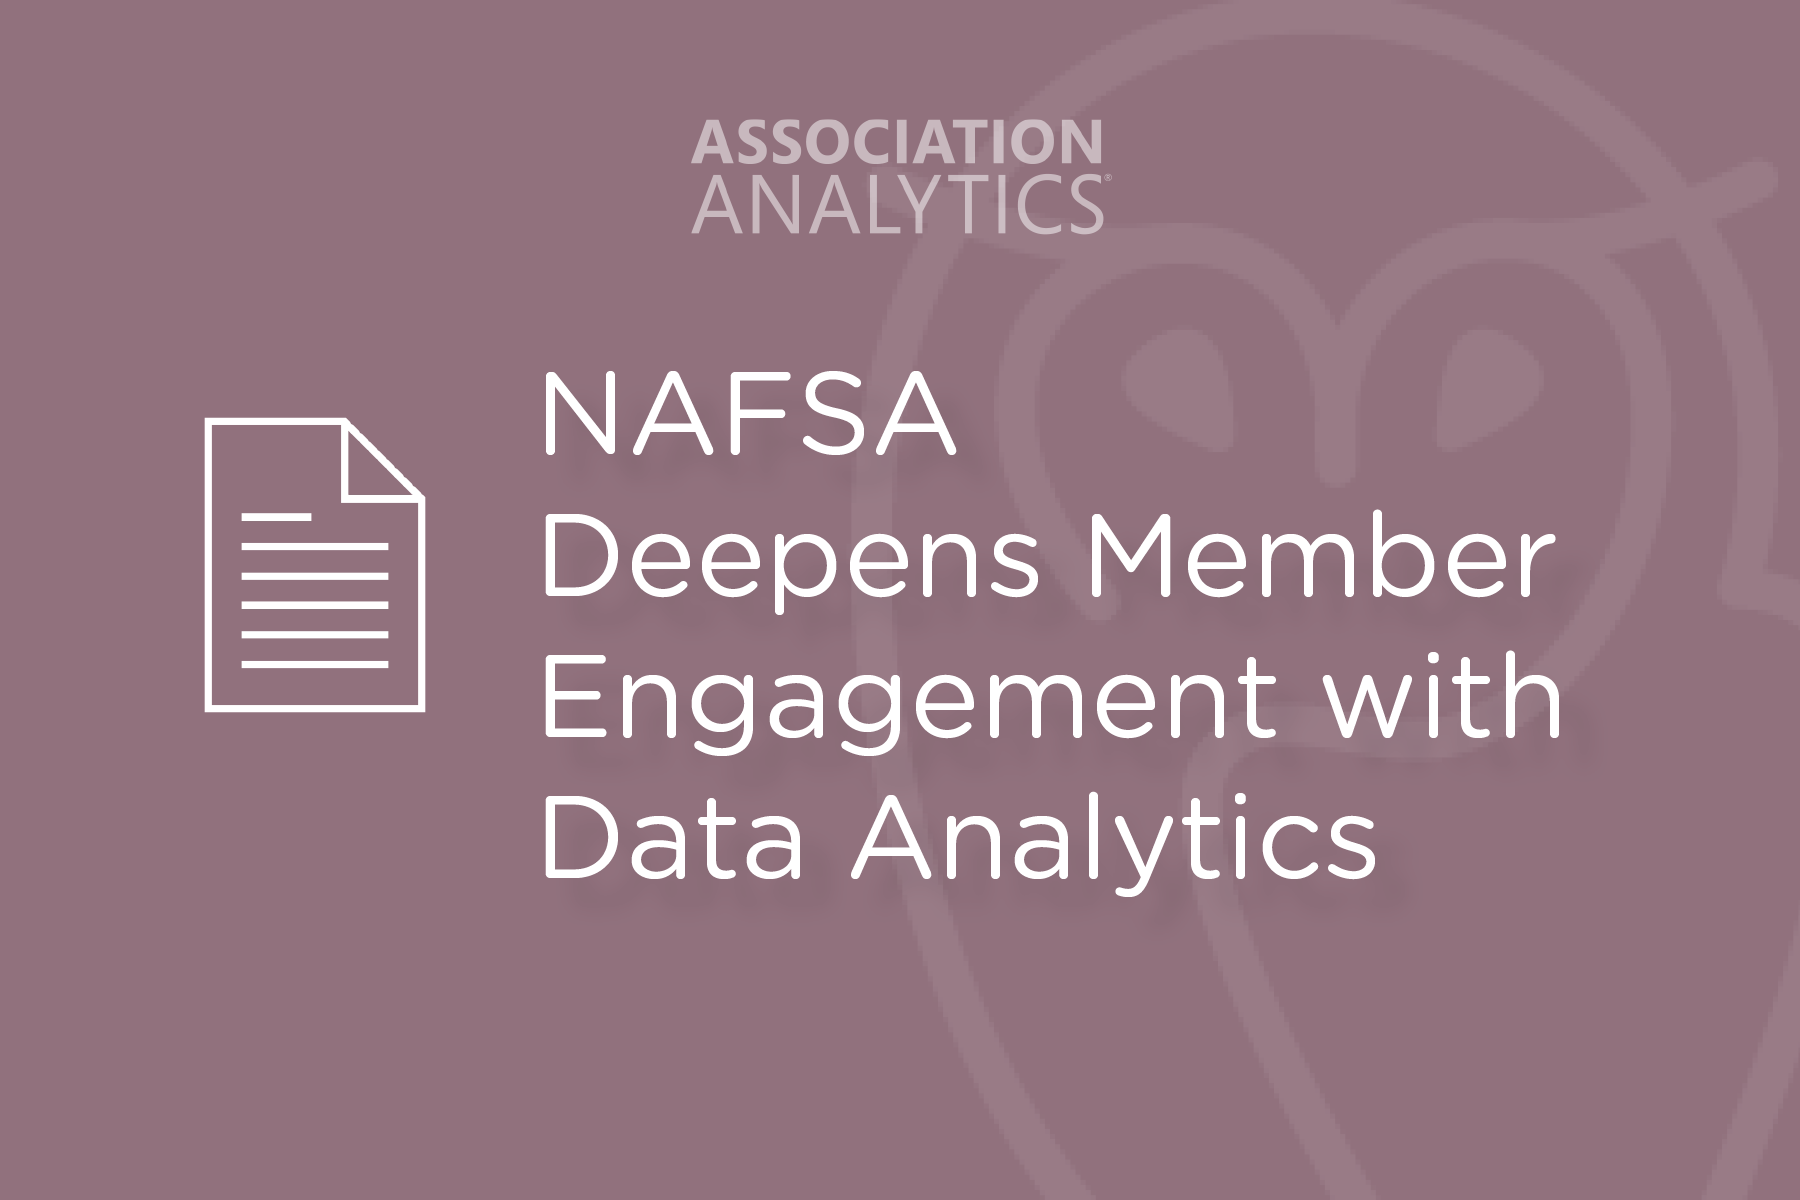 NAFSA Deepens Member Engagement with Data Analytics